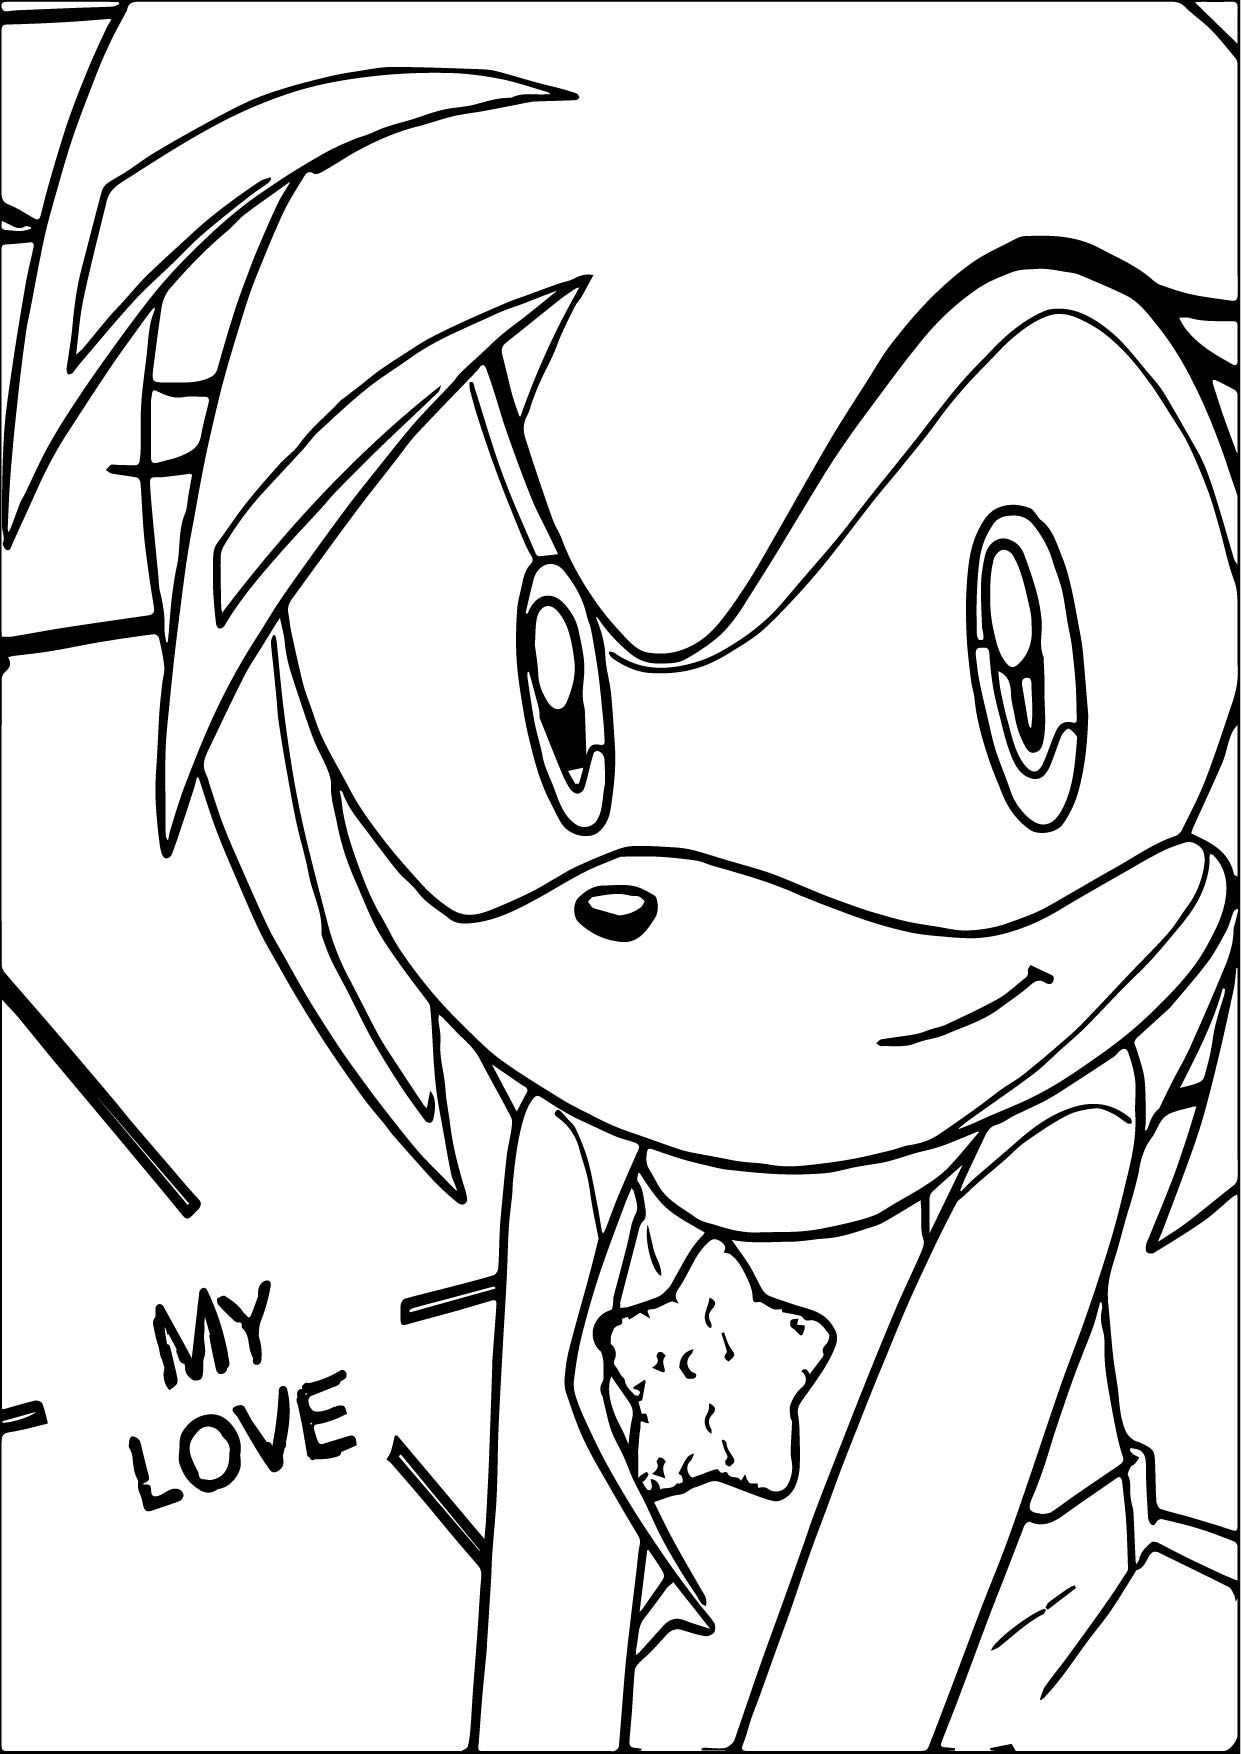 amy rose my love coloring page wecoloringpage